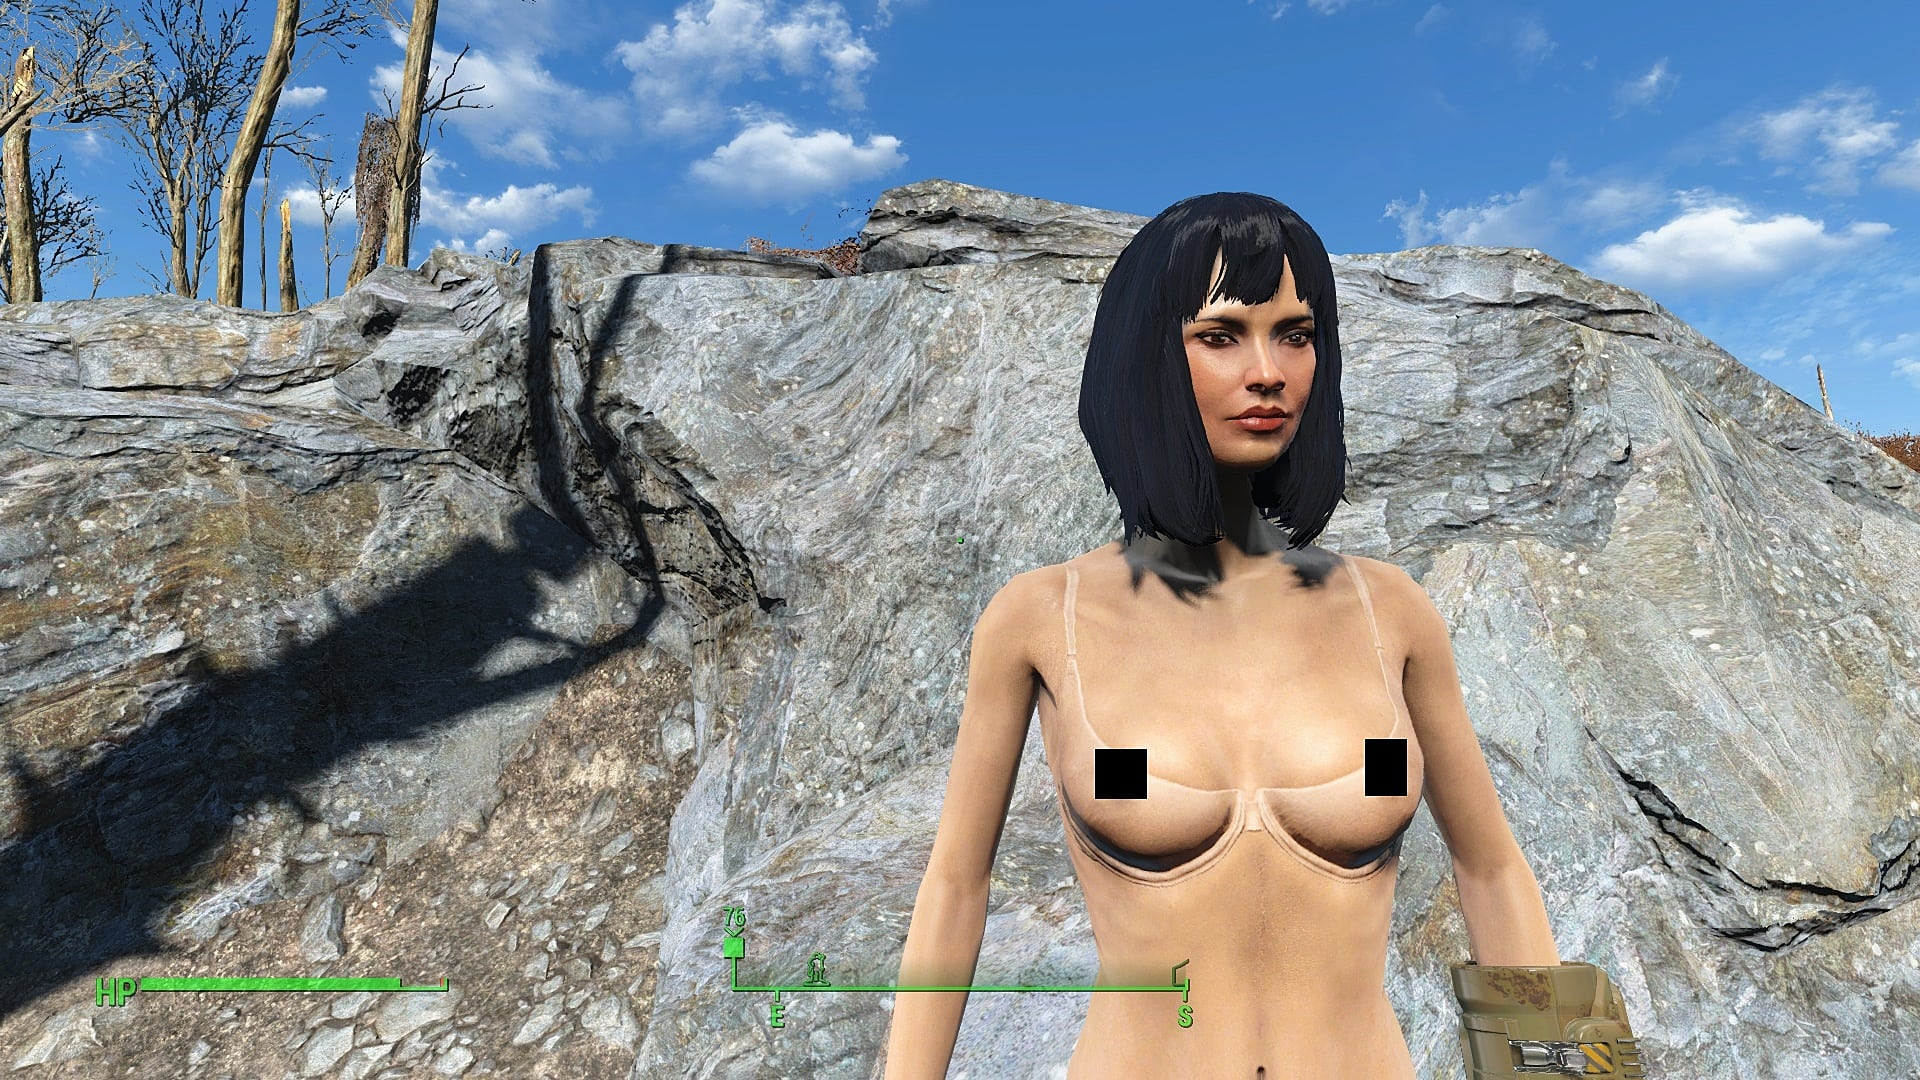 The Best Nsfw Nude Fallout 4 Mods And Where To Find Them -7909